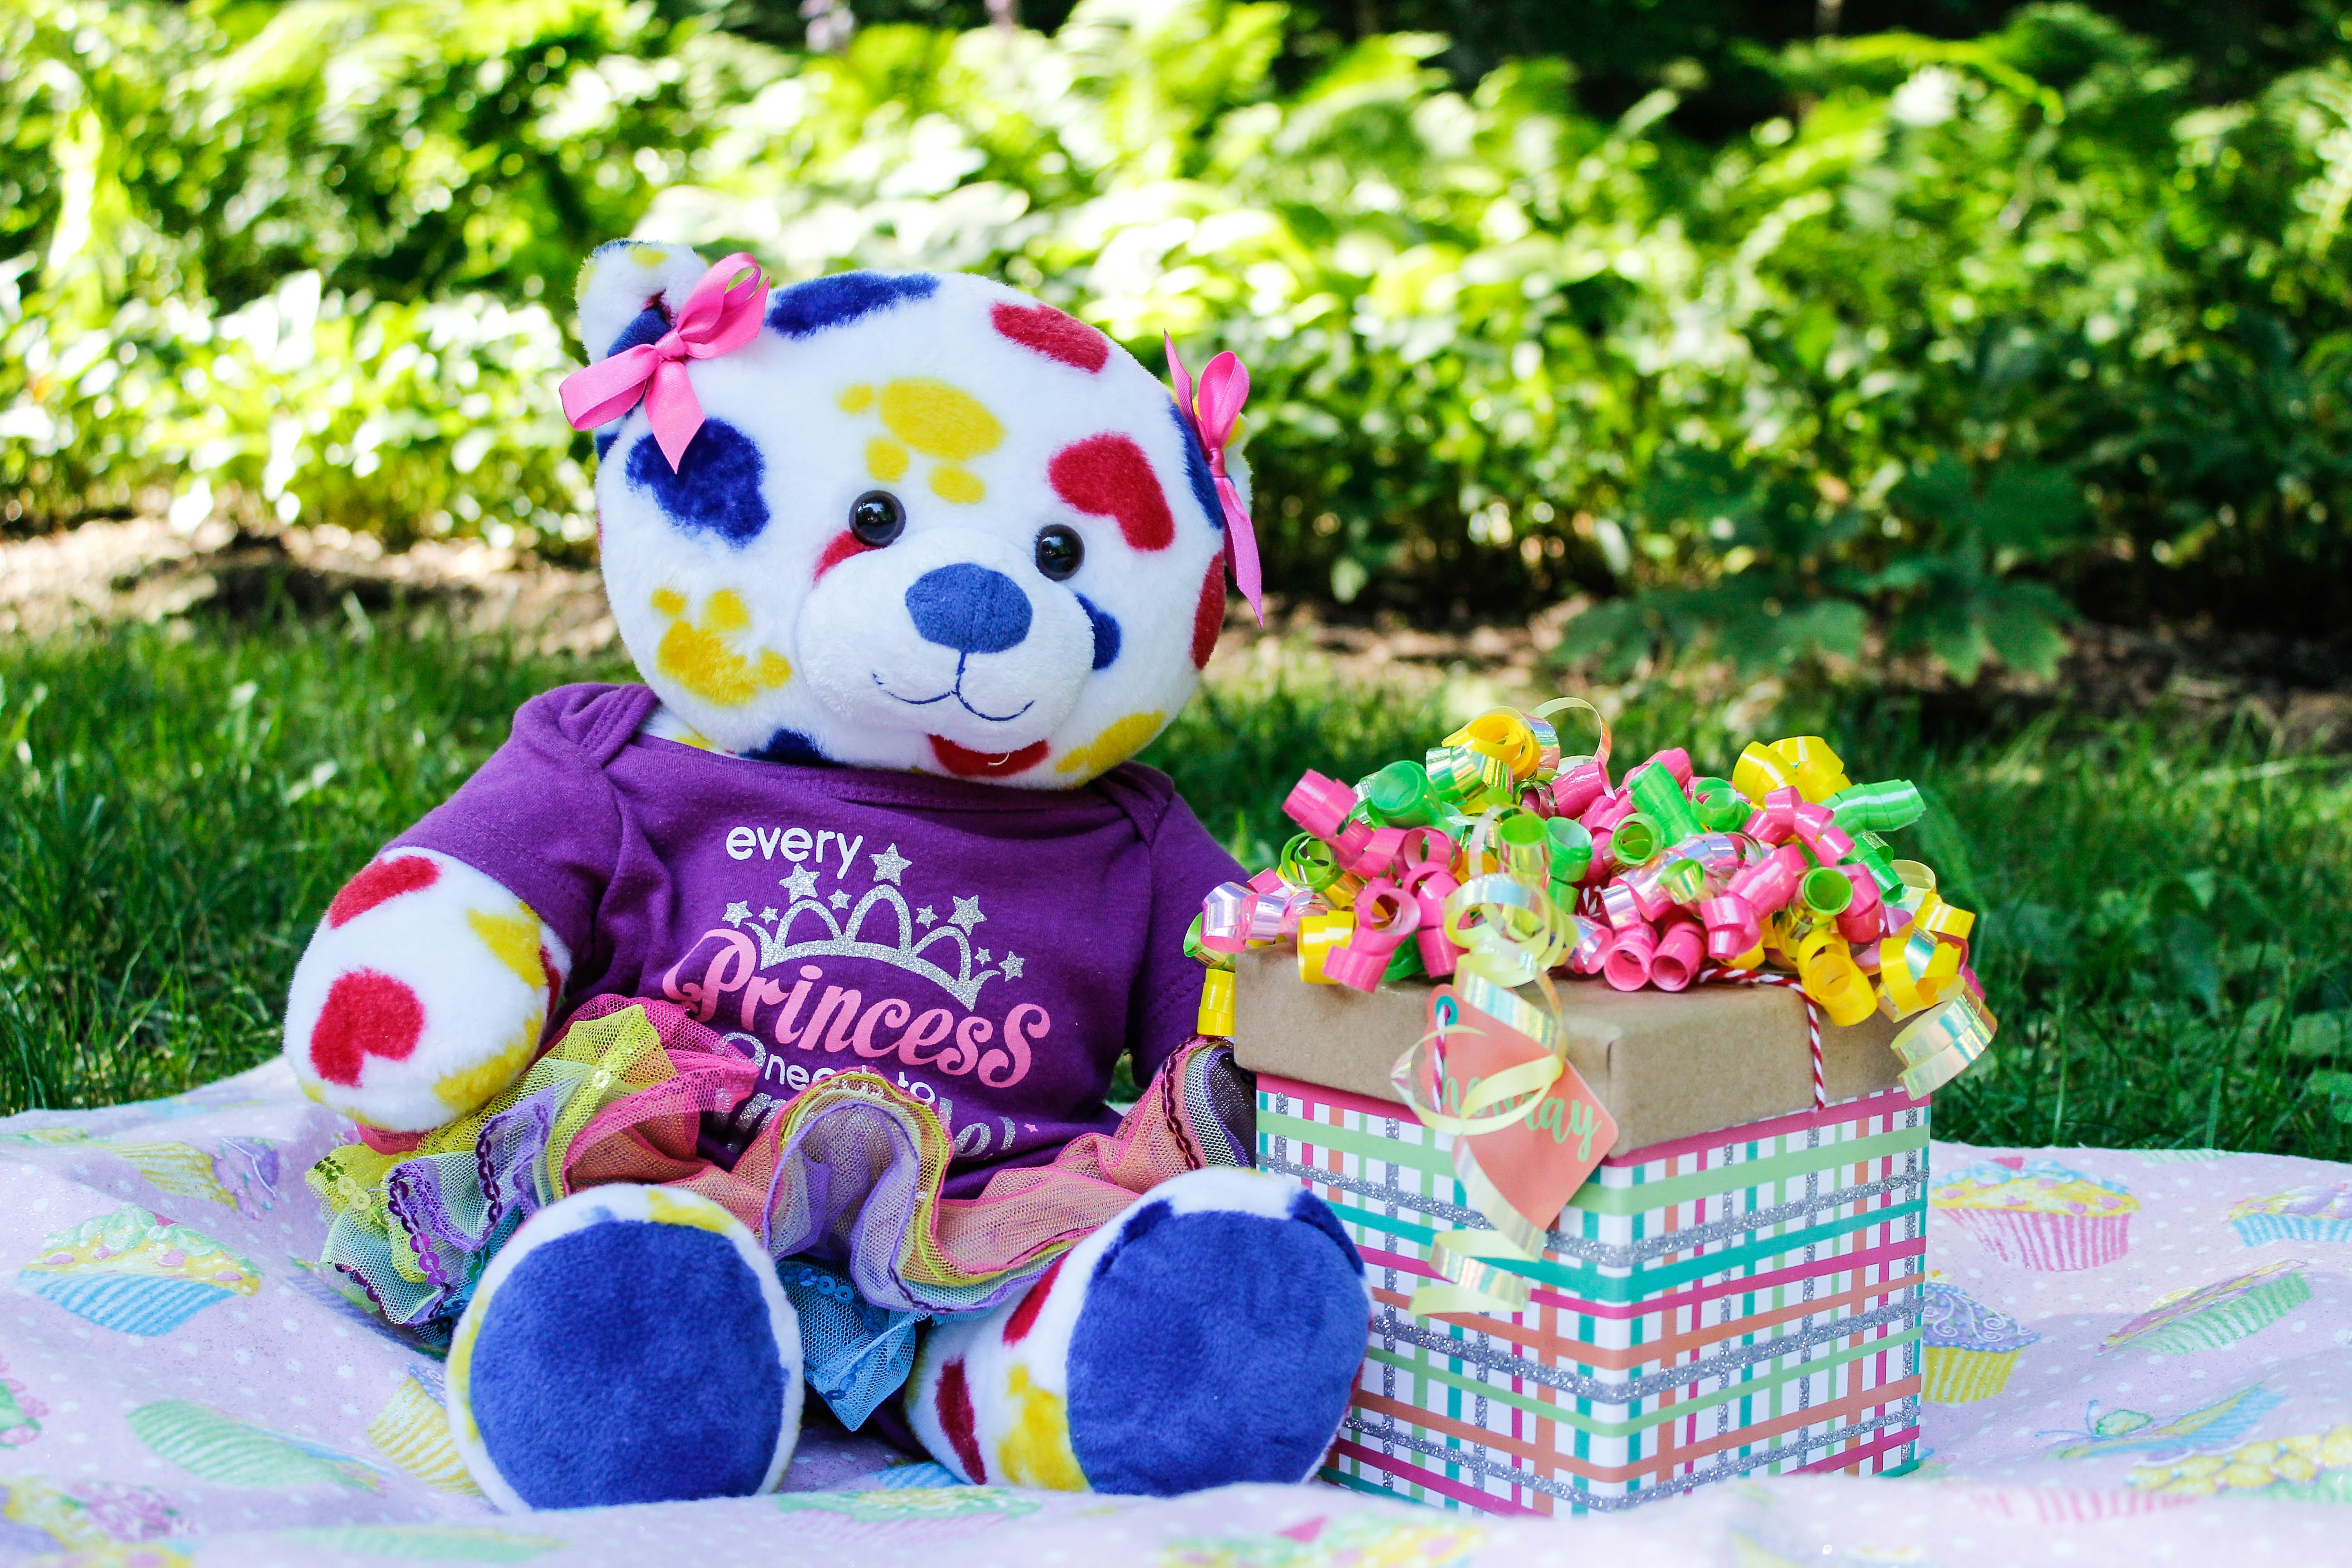 White, Yellow, Red, and Blue Teddy Bear Beside Gift Box